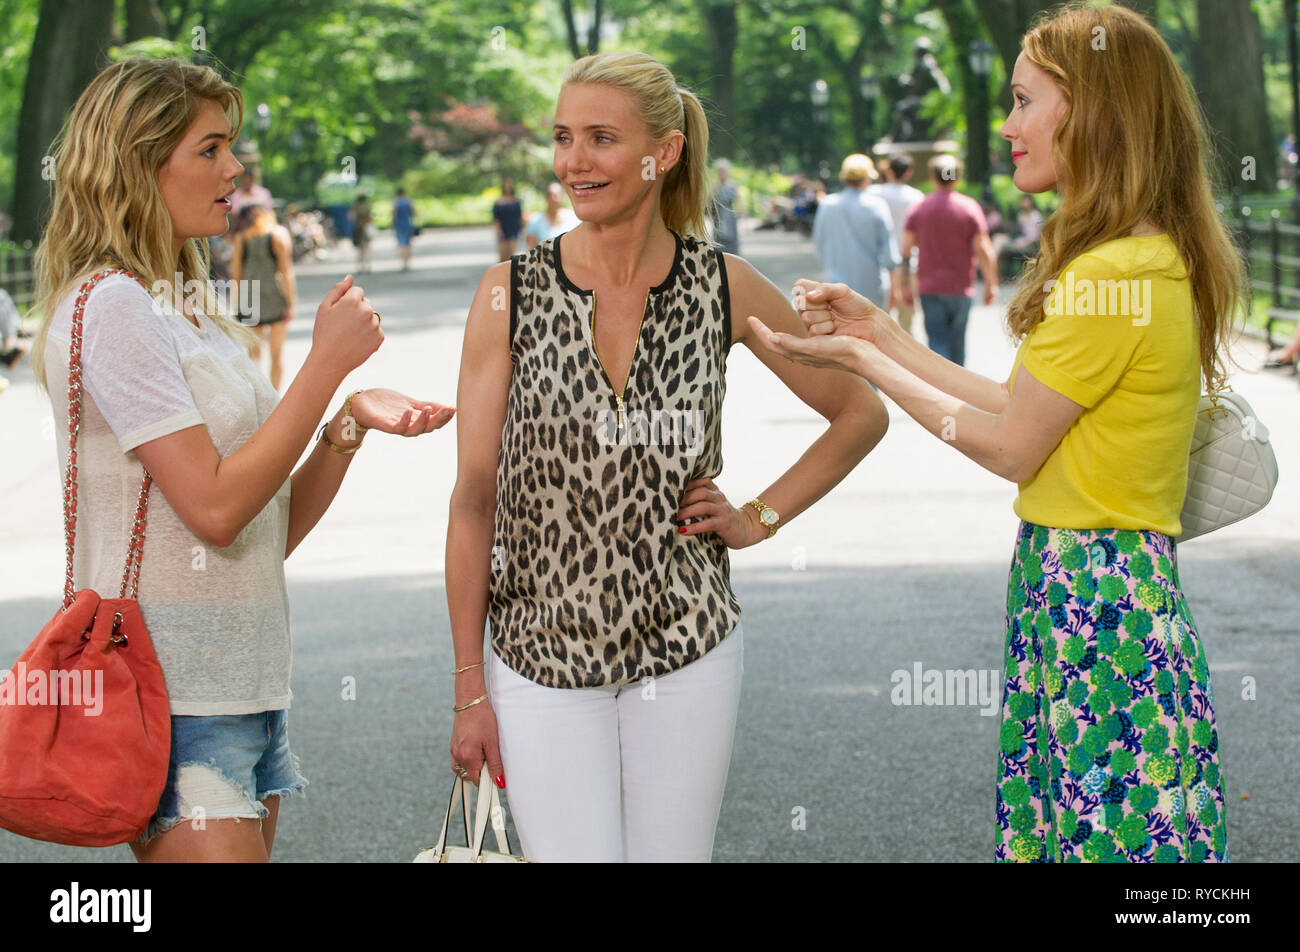 KATE UPTON, CAMERON DIAZ, LESLIE MANN, THE OTHER WOMAN, 2014 - Stock Image